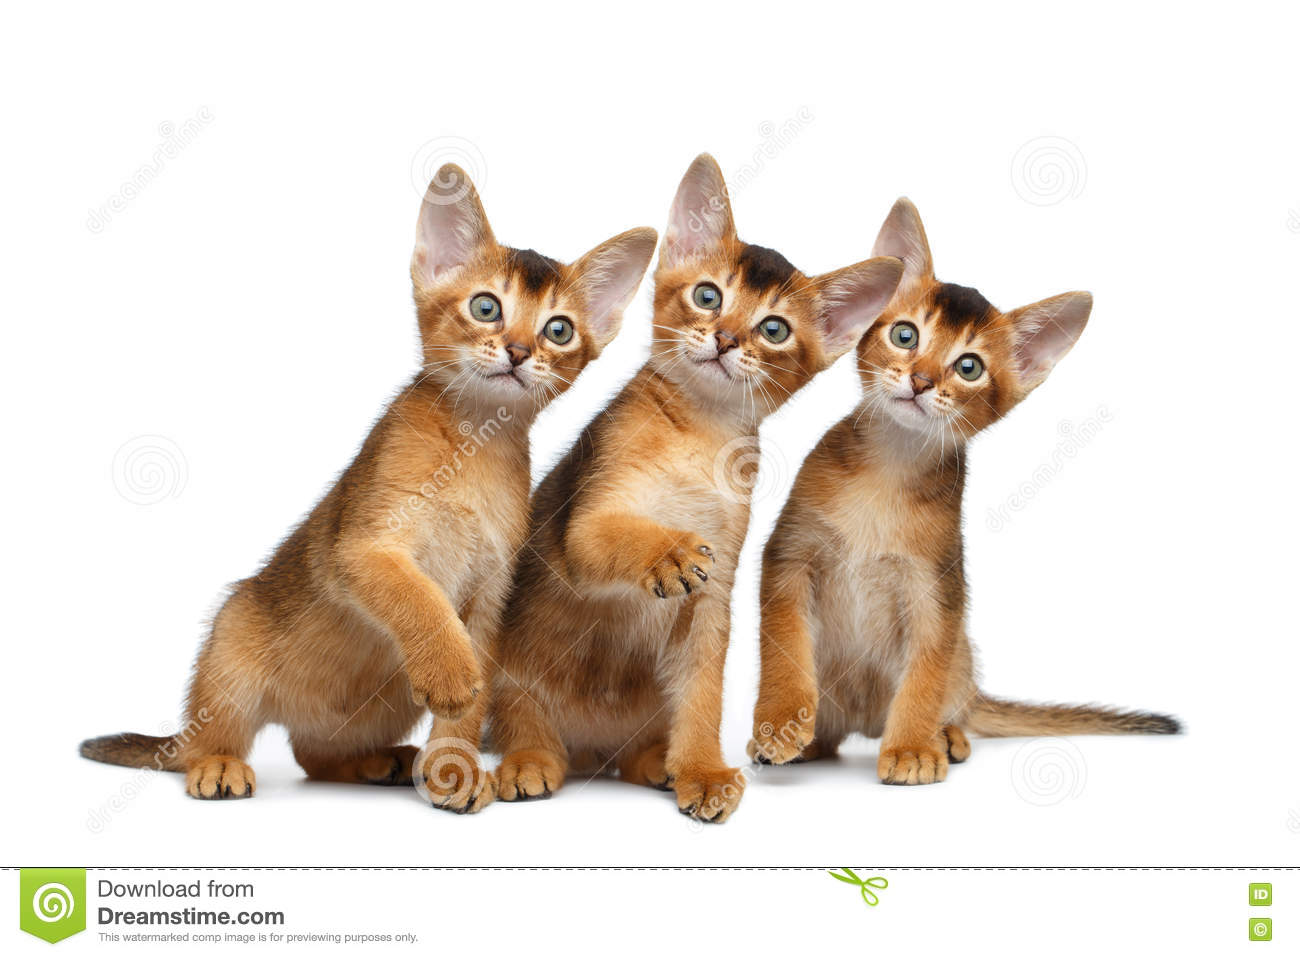 Three Cute Abyssinian Kitten Sitting on Isolated White Background